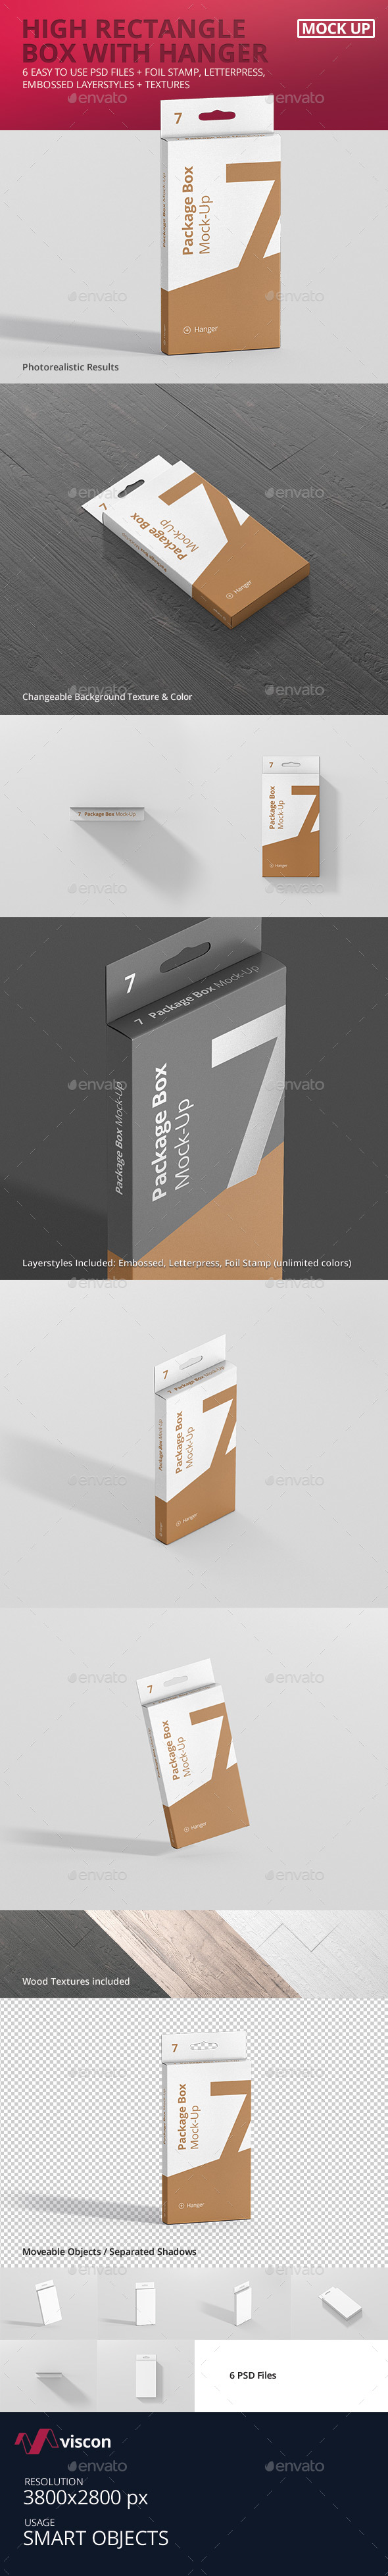 Package Box Mock-Up - High Rectangle with Hanger